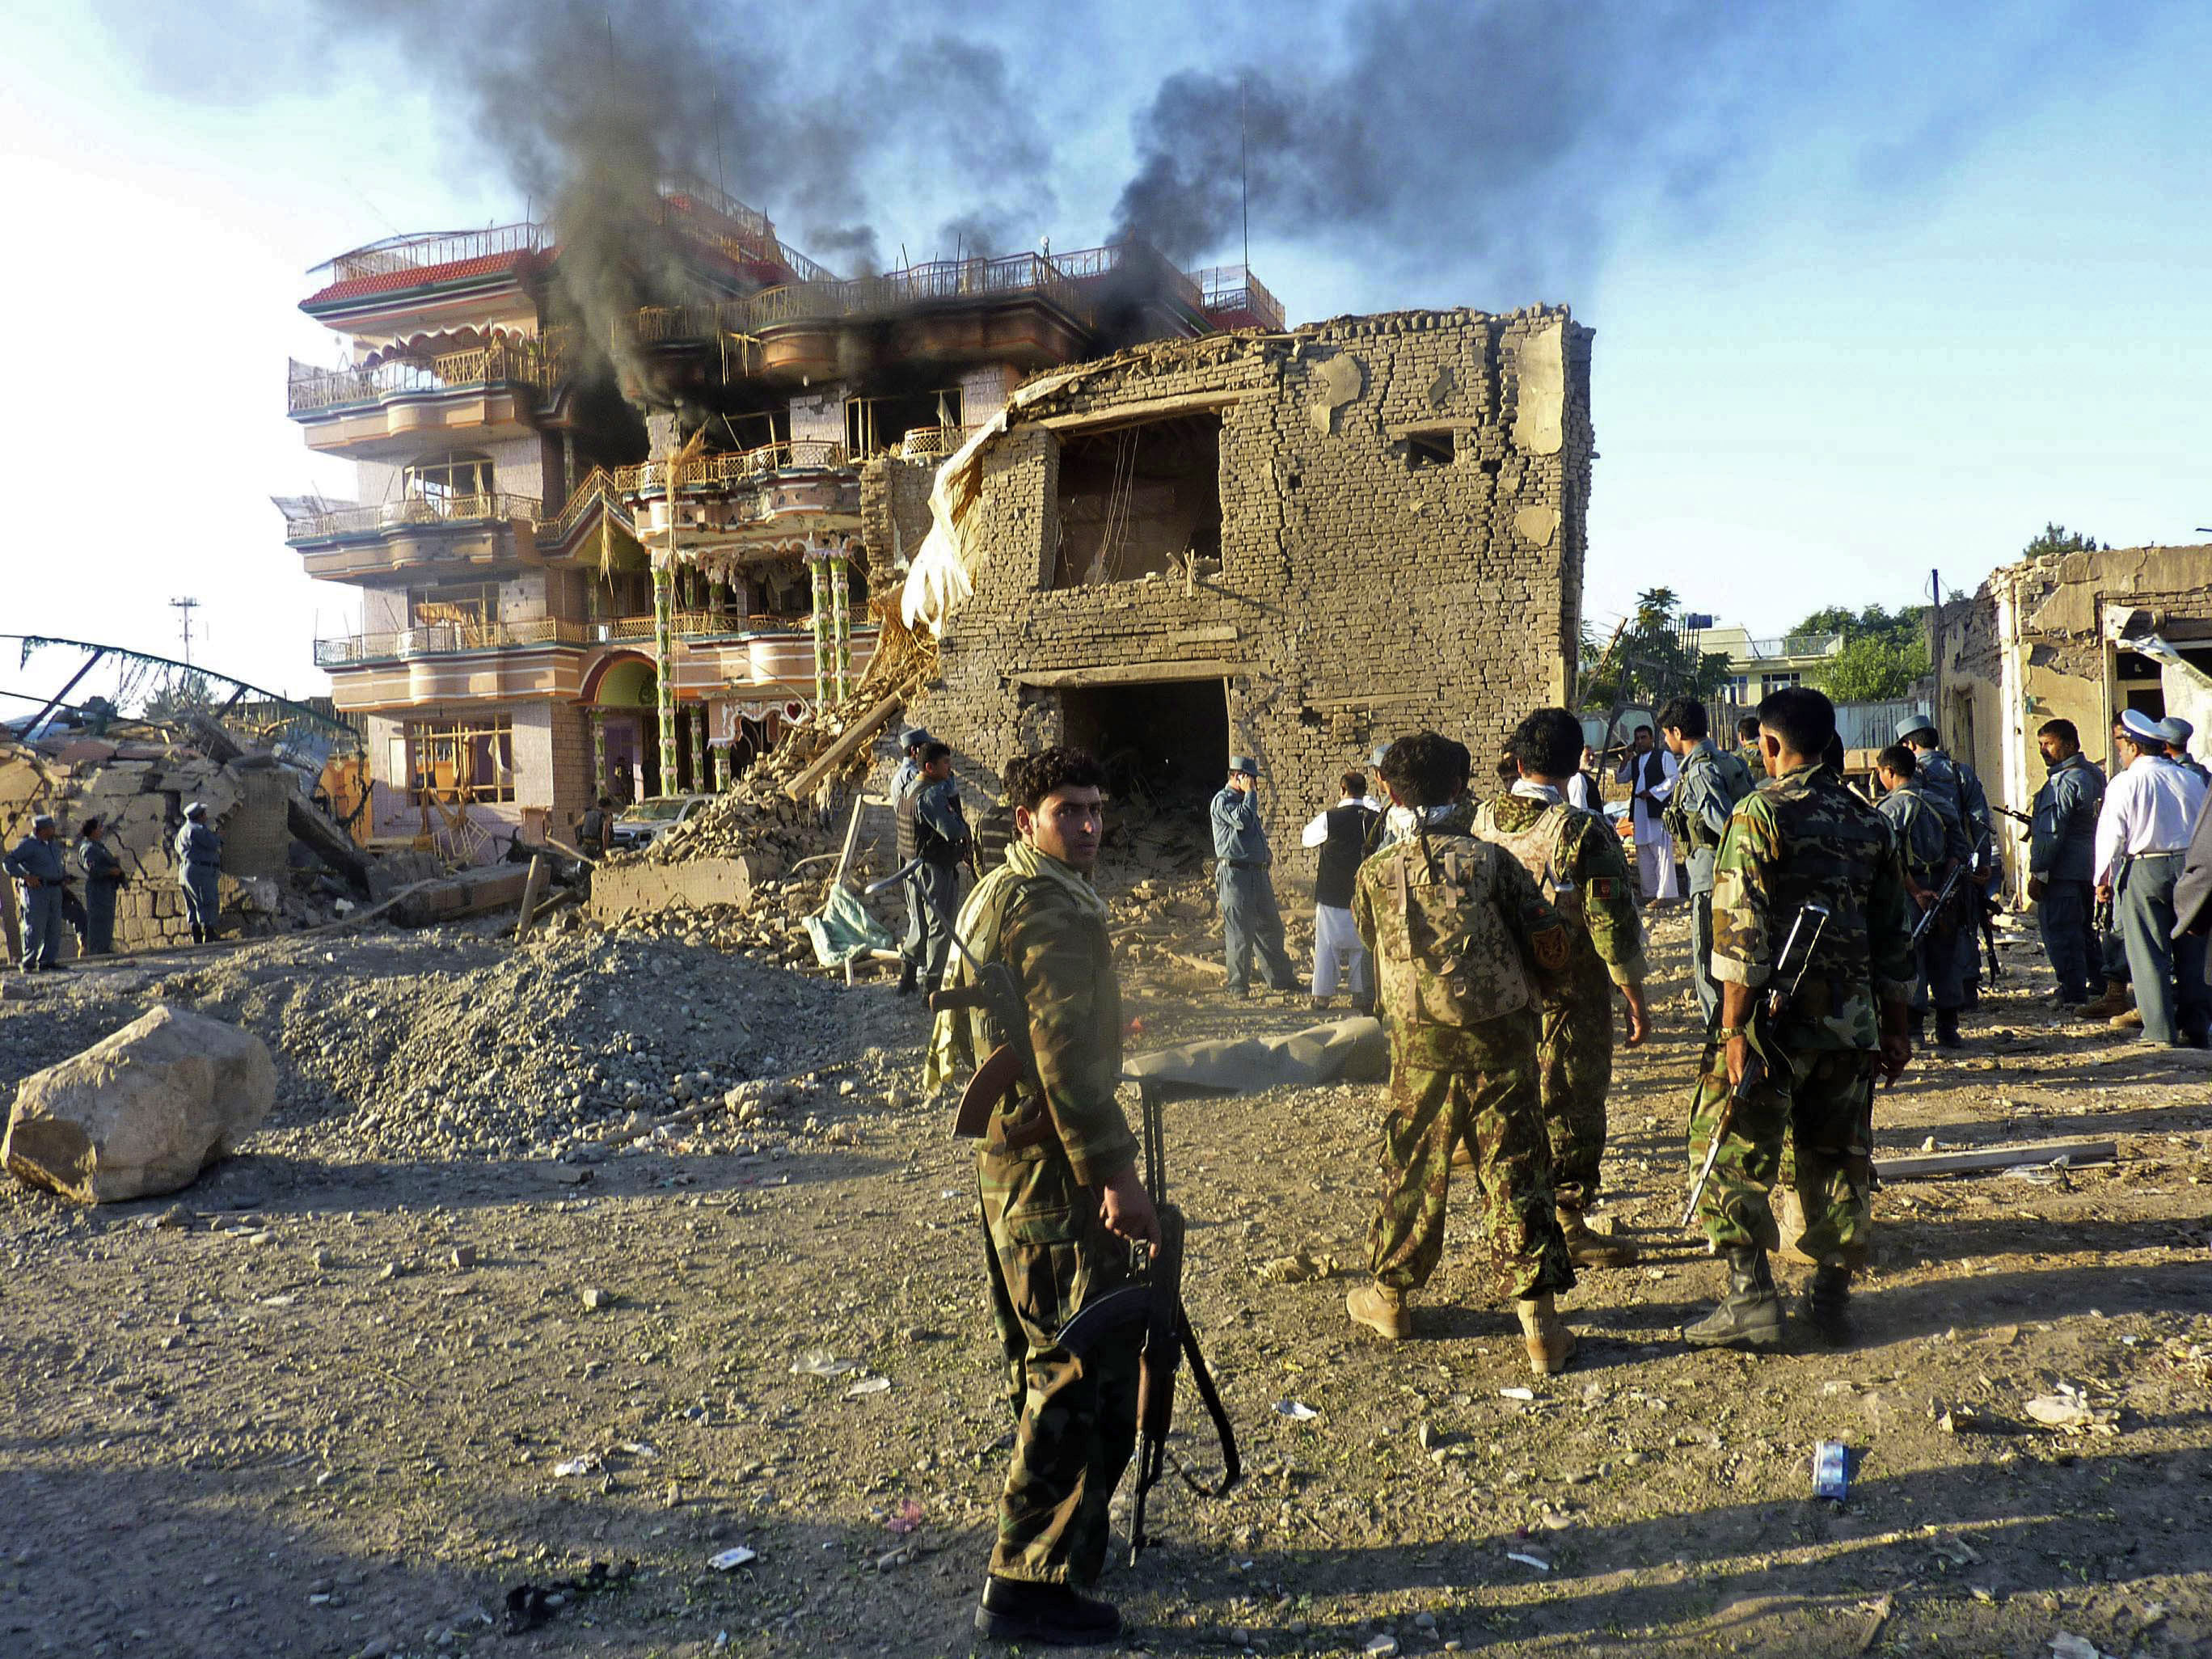 In this July 2, 2010 file photo, Afghan security forces stand outside a USAID compound in Kunduz, northern Afghanistan, after it was stormed by militants wearing suicide vests.